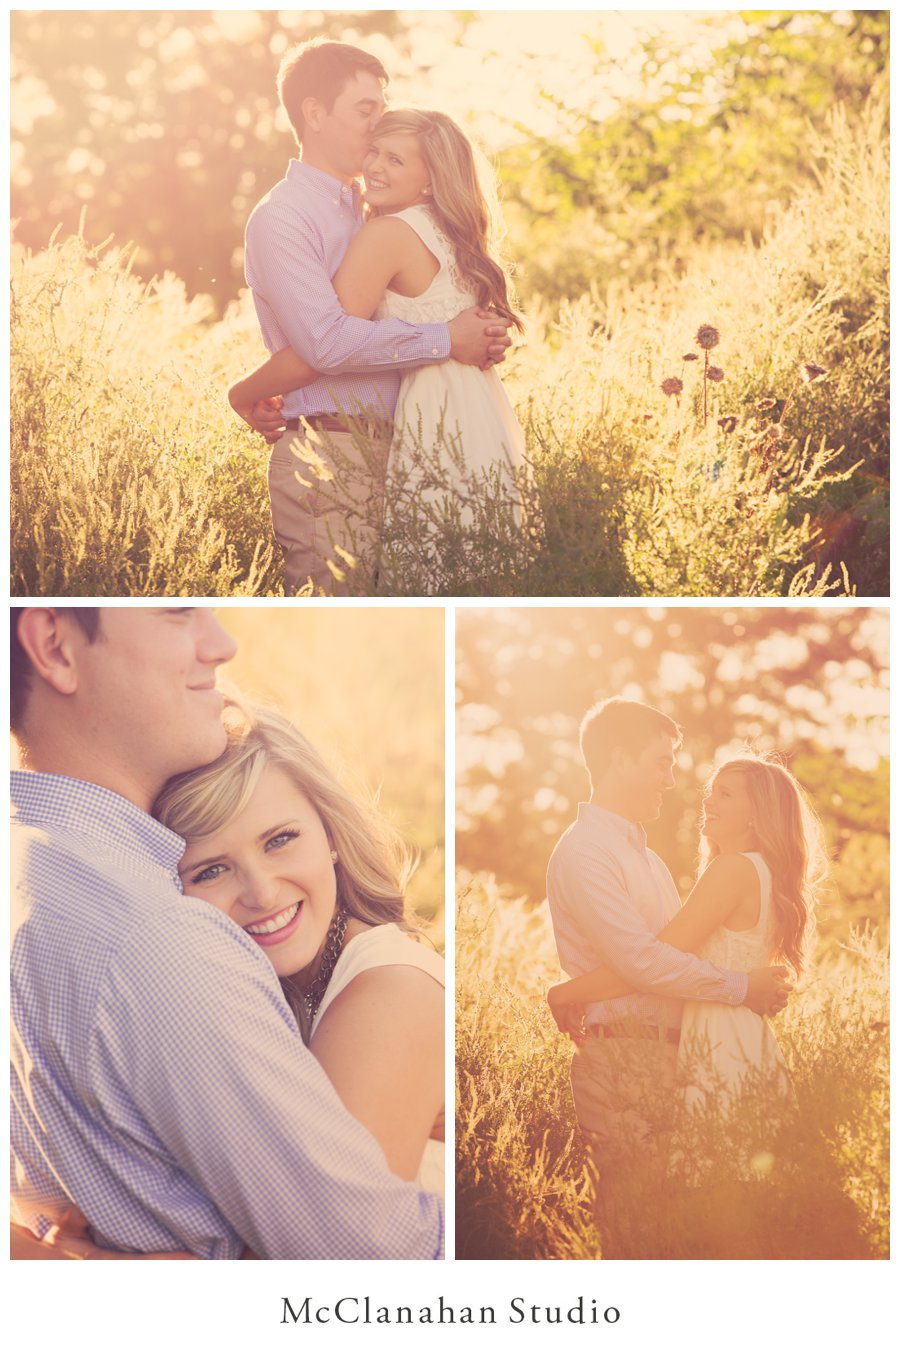 Hazy, romantic backlit engagement photos with golden sunlight and romantic cuddling. Iowa engagement photos by McClanahan Studio.